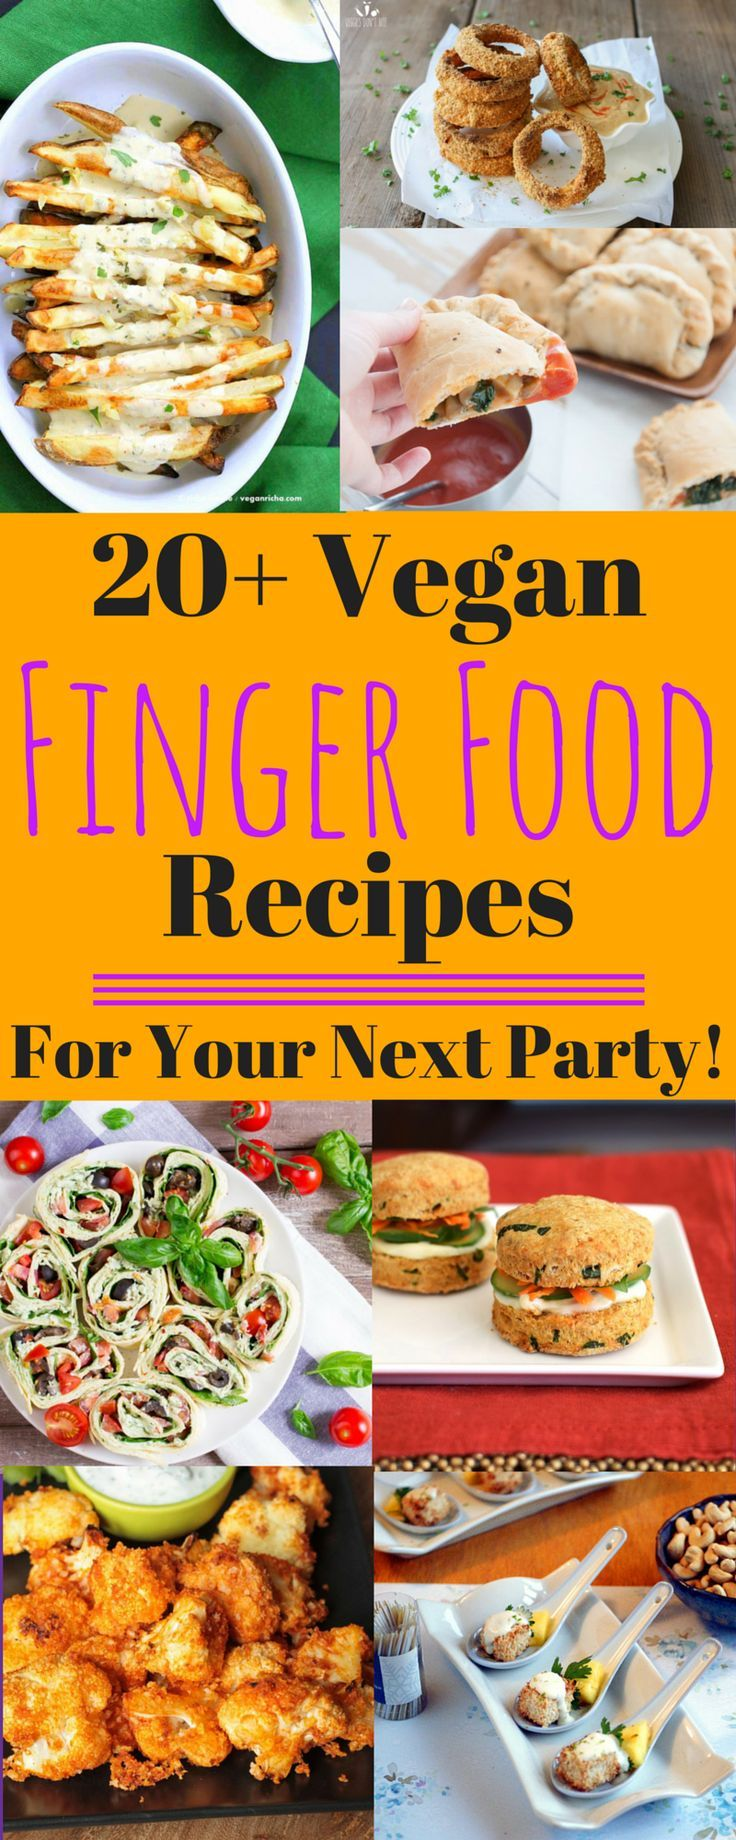 Vegan Finger Food Recipes For Your Next Party Appetizer Recipes Vegan Recipes Vegan Dishes